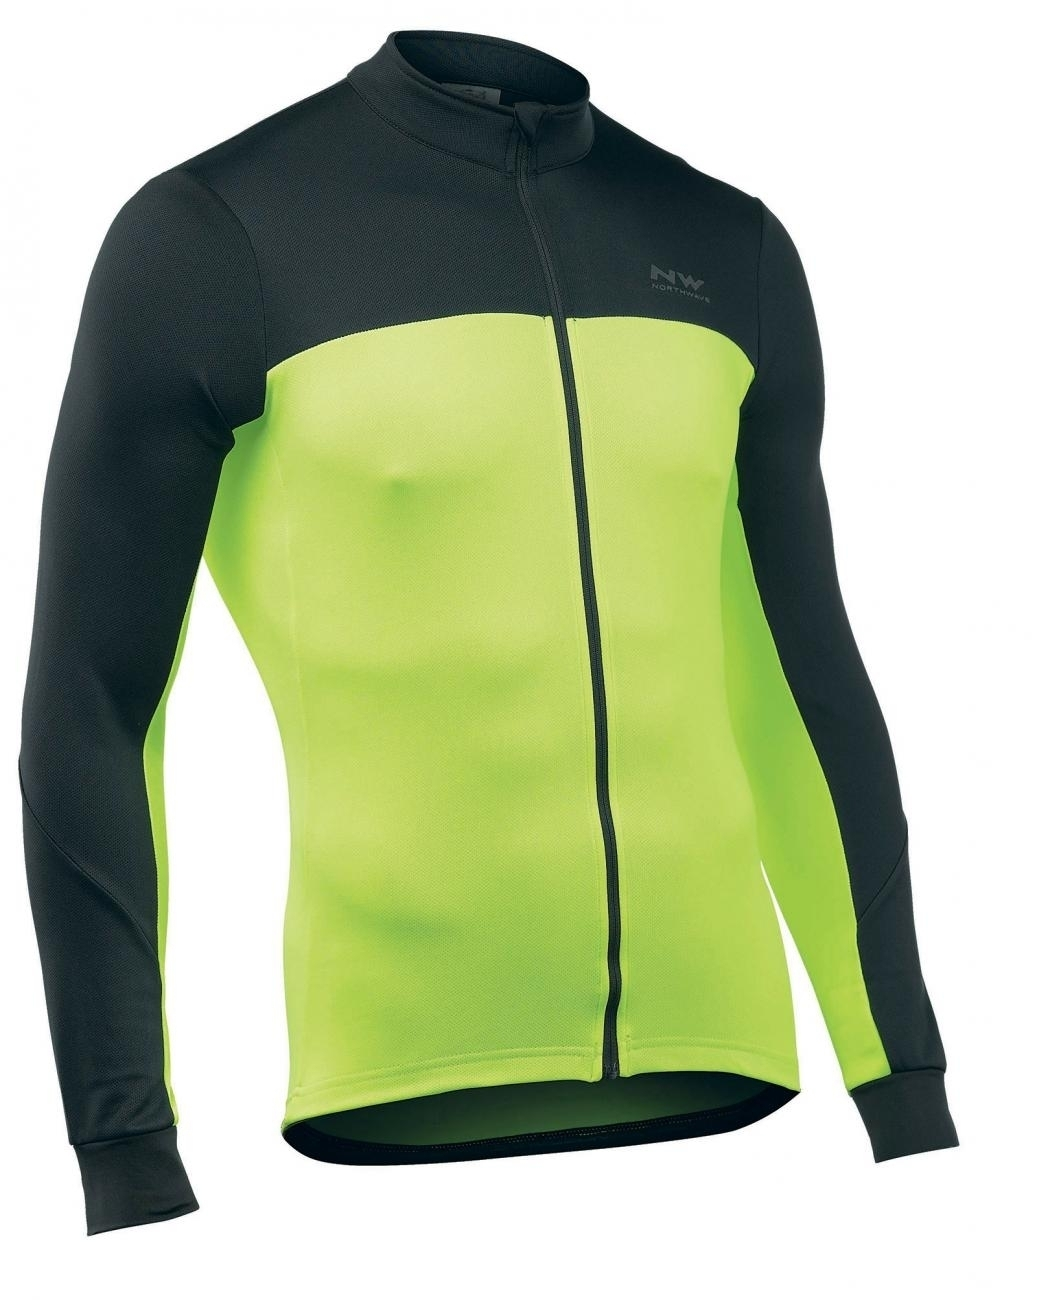 Best price Northwave Man cycling jersey long sleeves FORCE